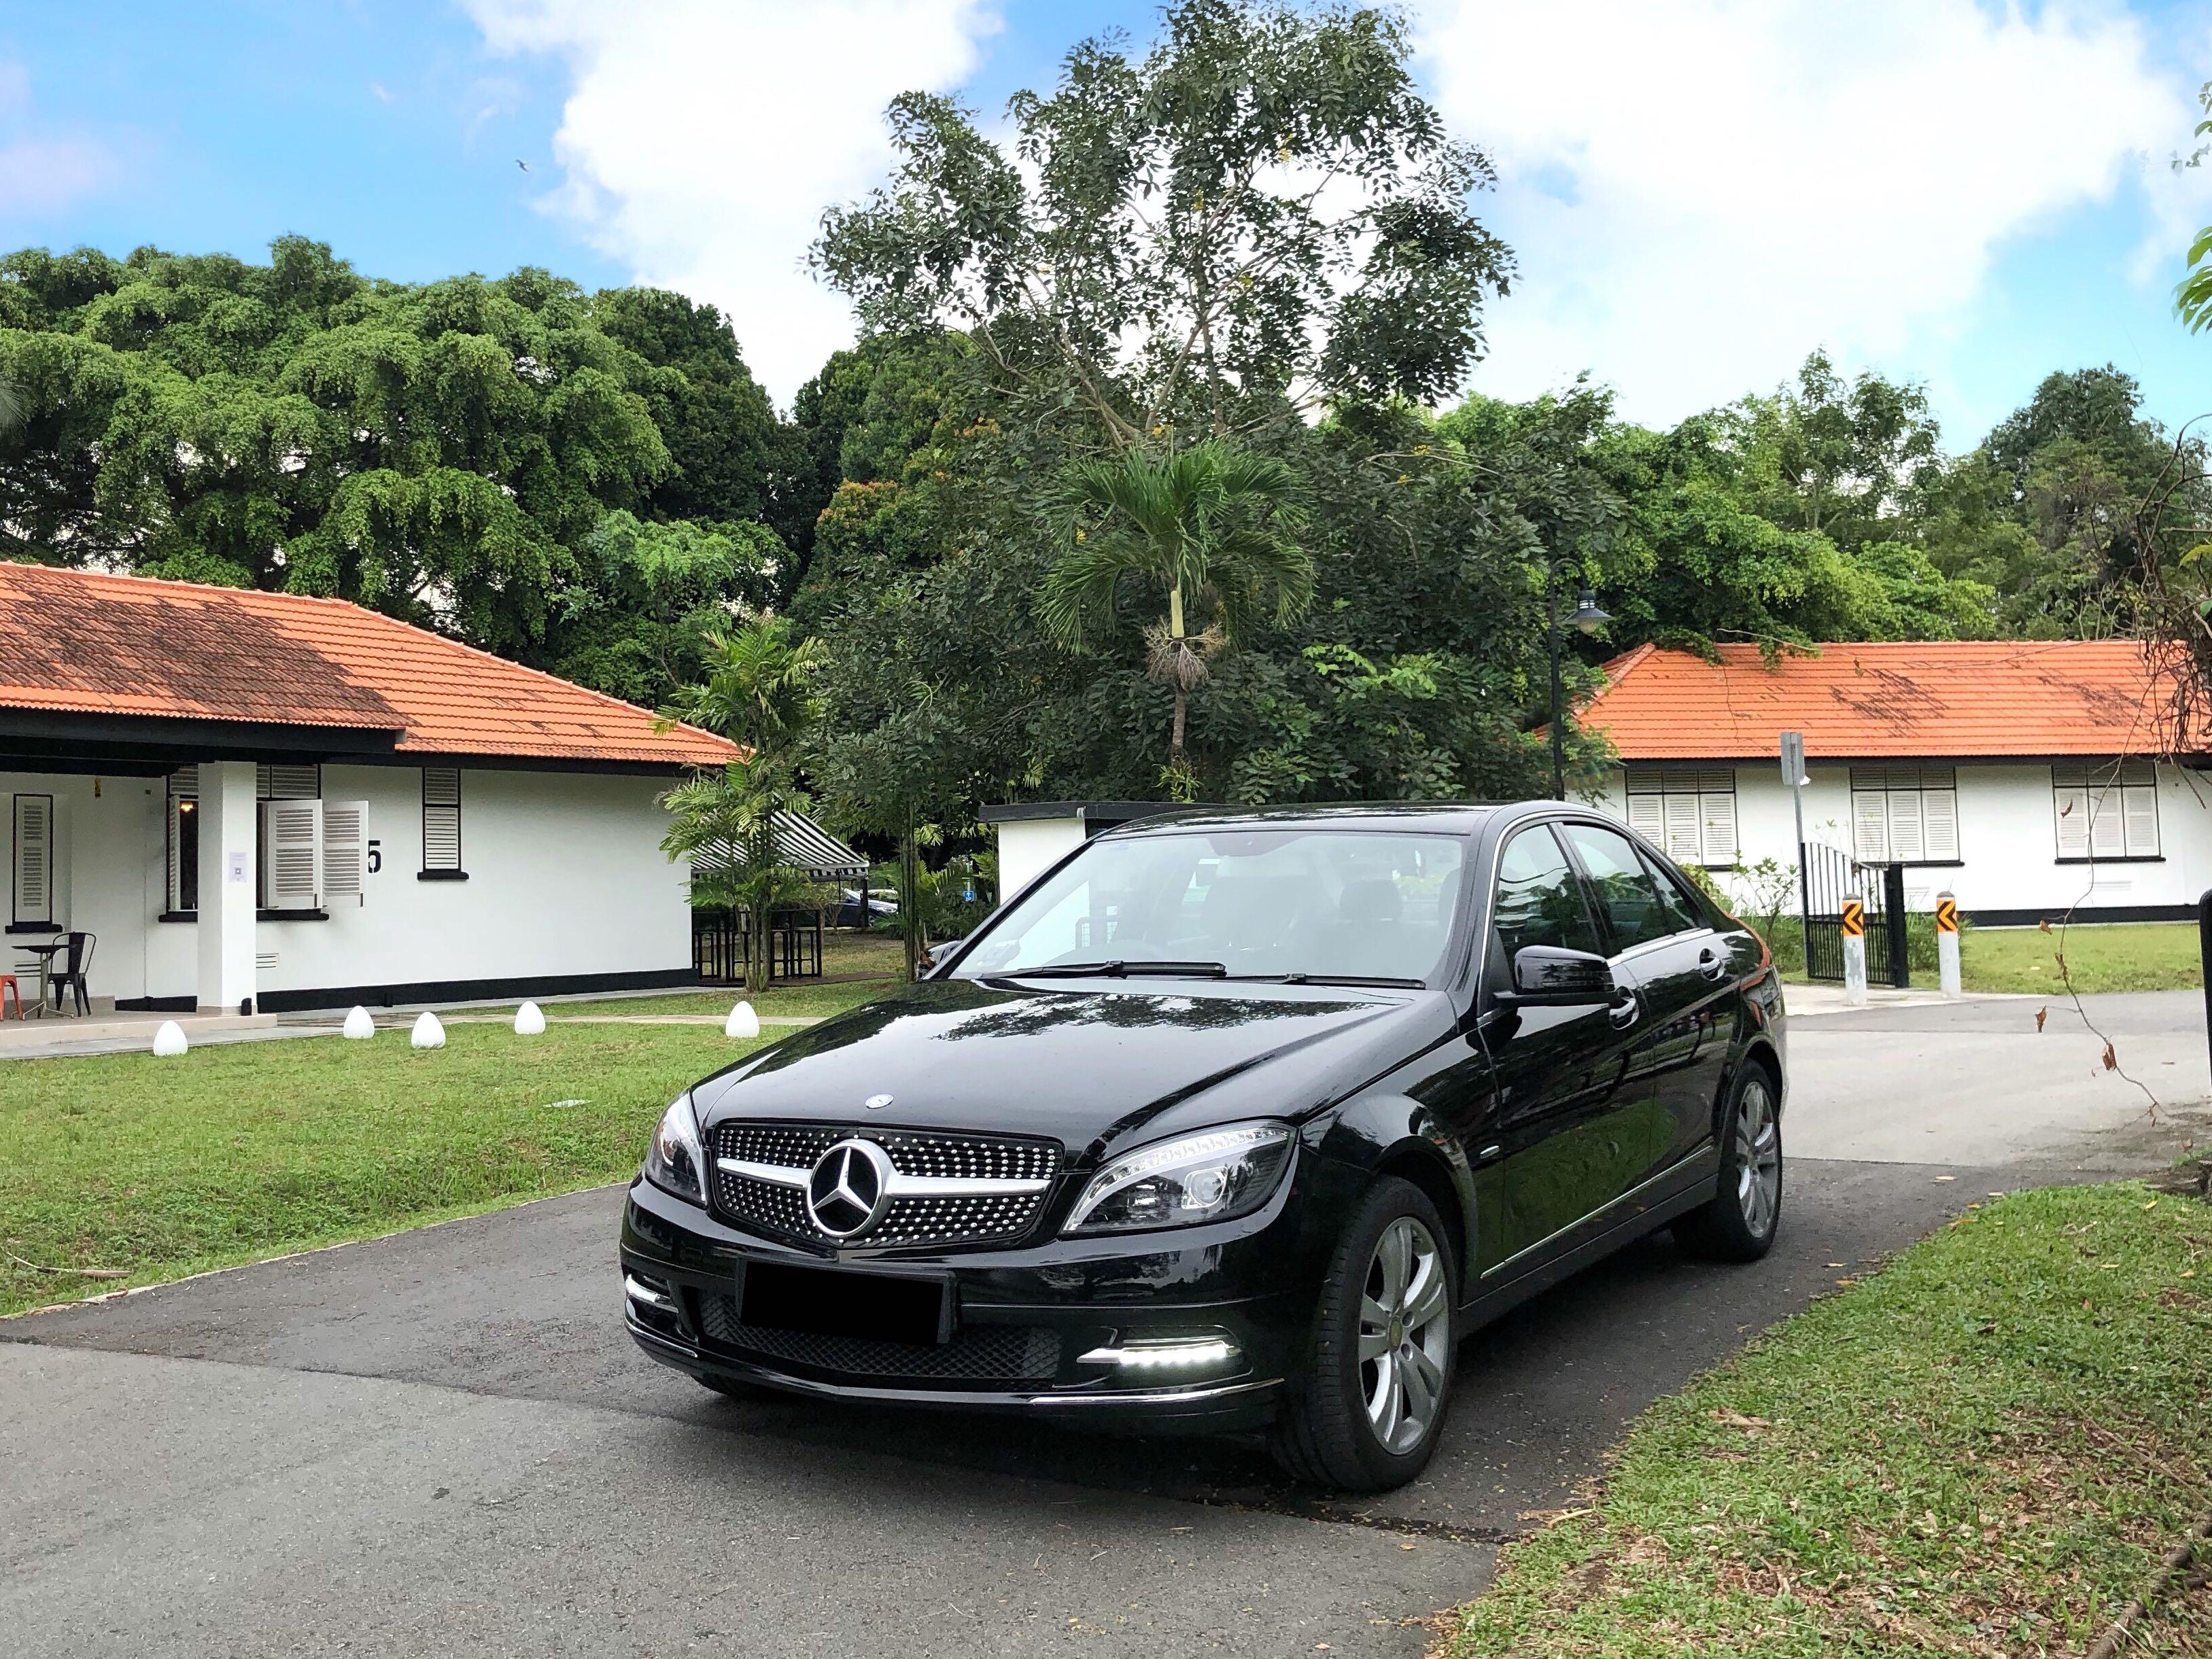 Mercedes C-Class for Weddings, Events and Daily Use